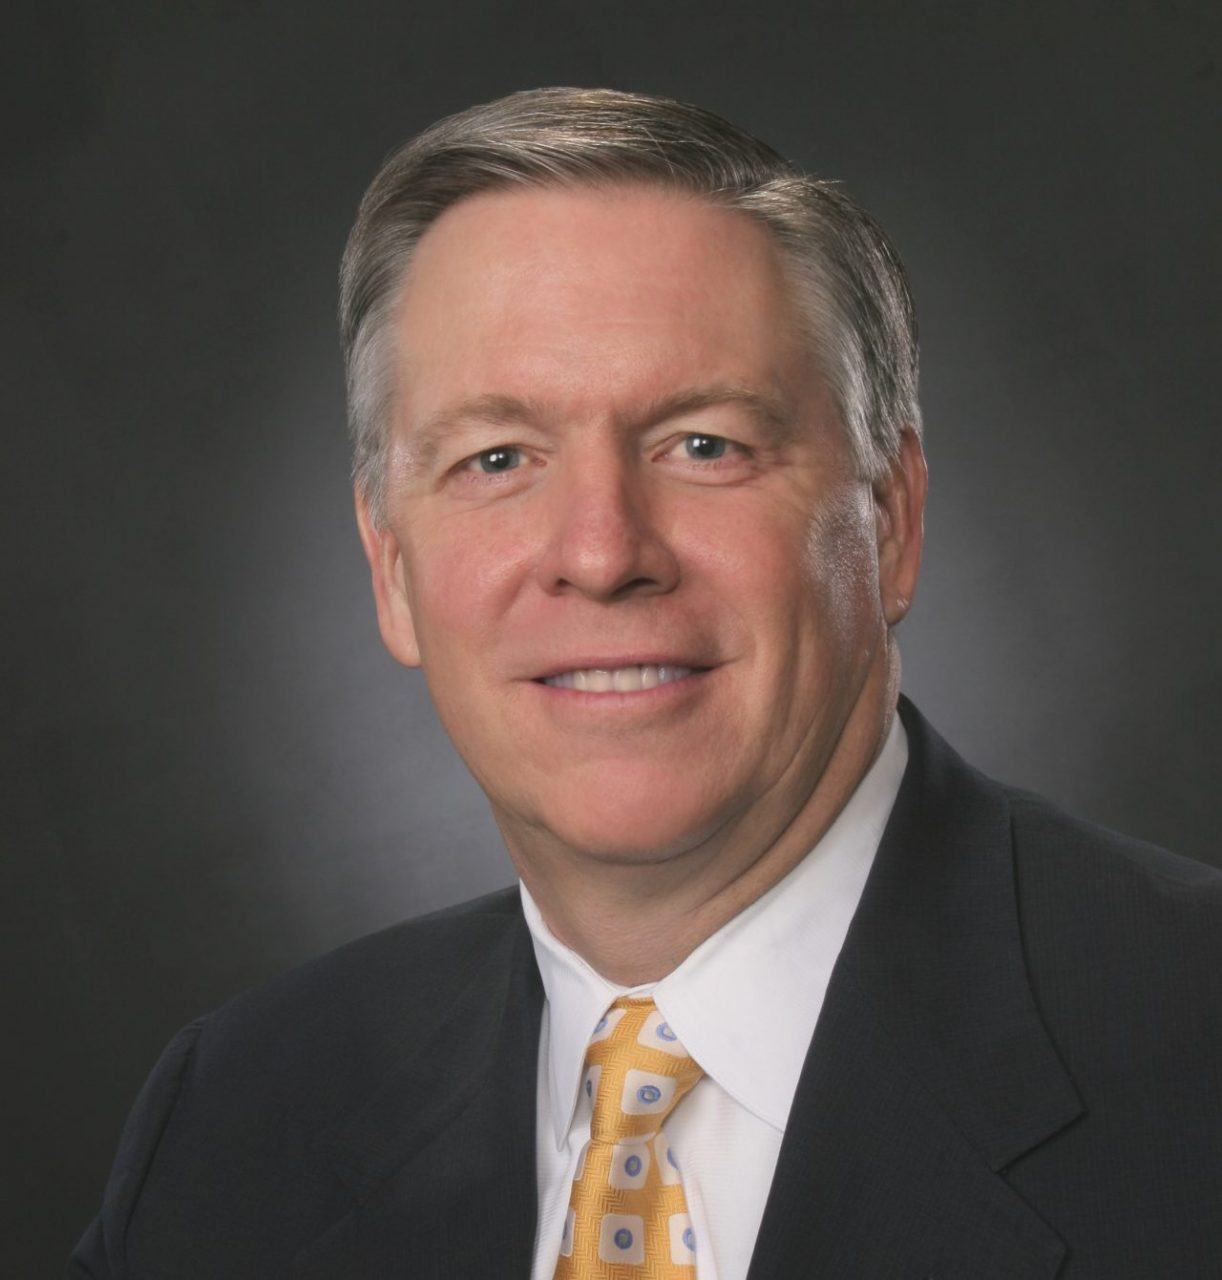 Steve Hagge to give keynote for Business Week 30 | News ... | title